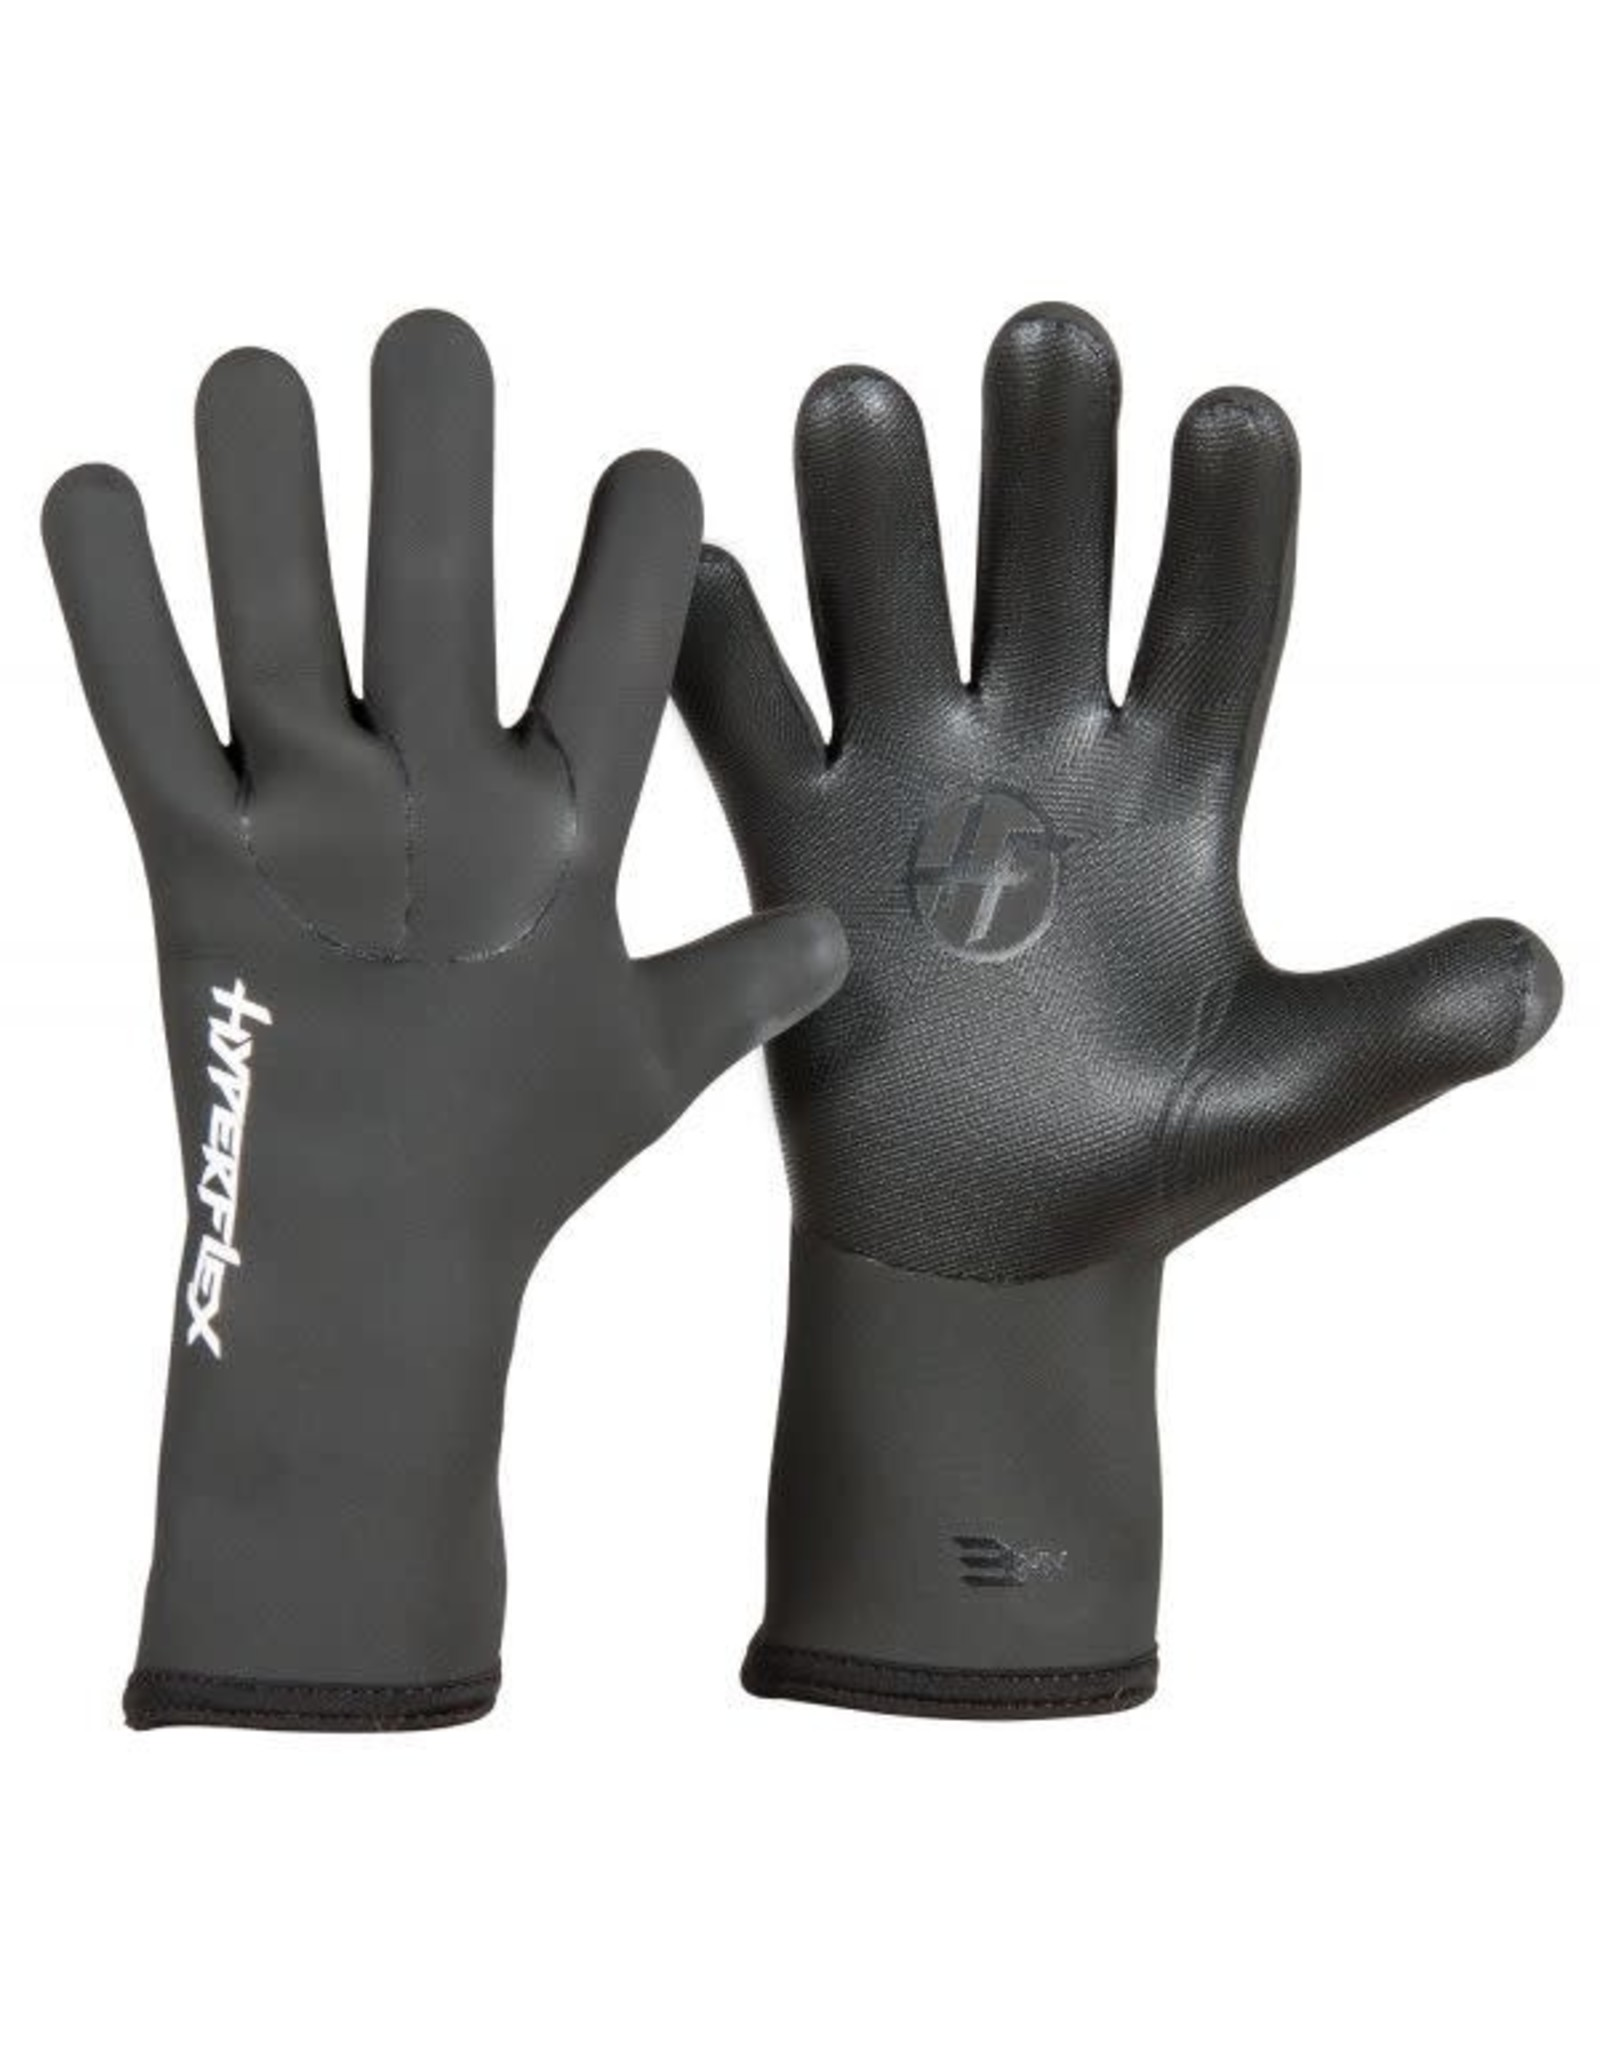 Hyperflex 3MM Mesh Skin Glove